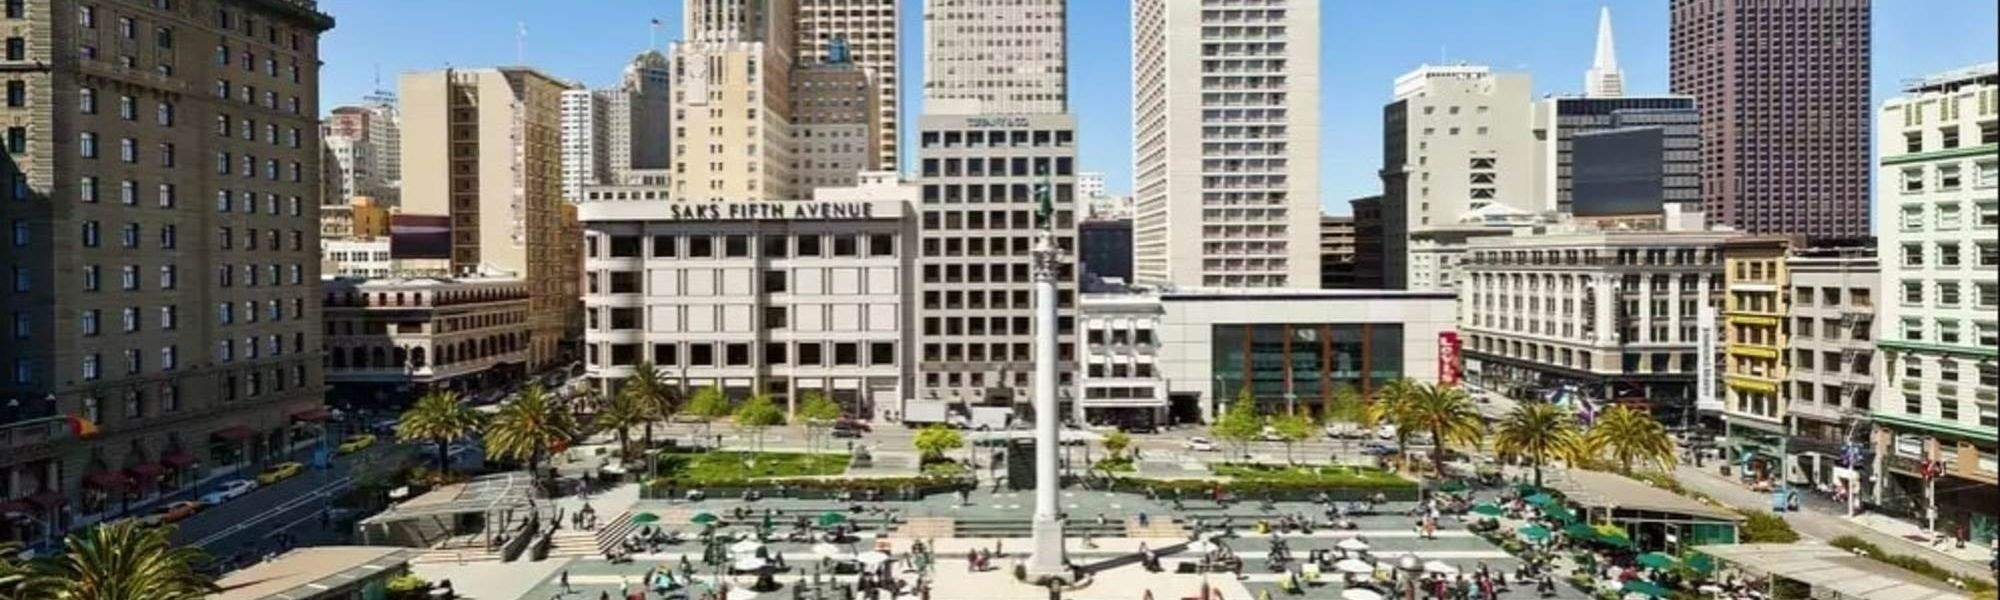 Location of The Inn at Union Square San Francisco - An Oxford Hotel, San Francisco